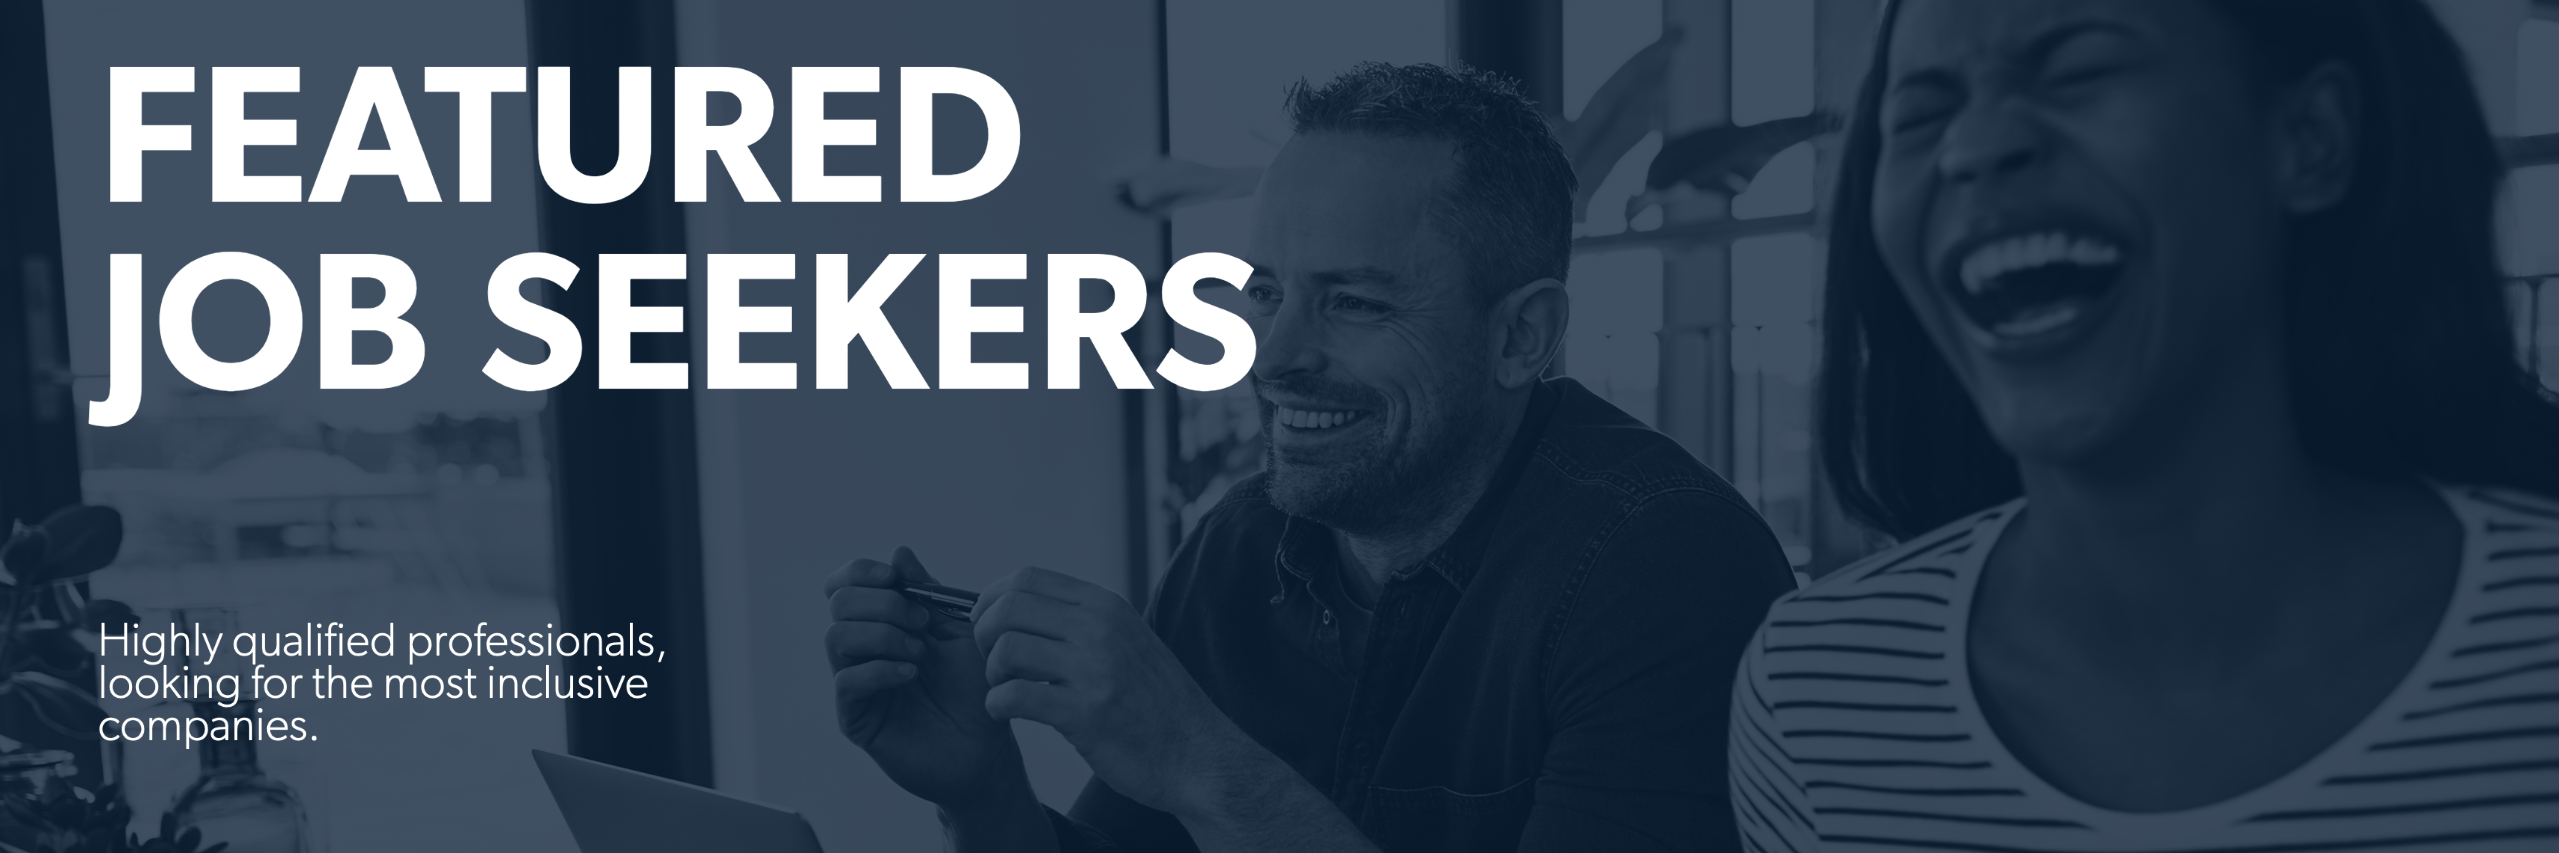 Our featured job seekers are highly qualified and looking to join inclusive companies.